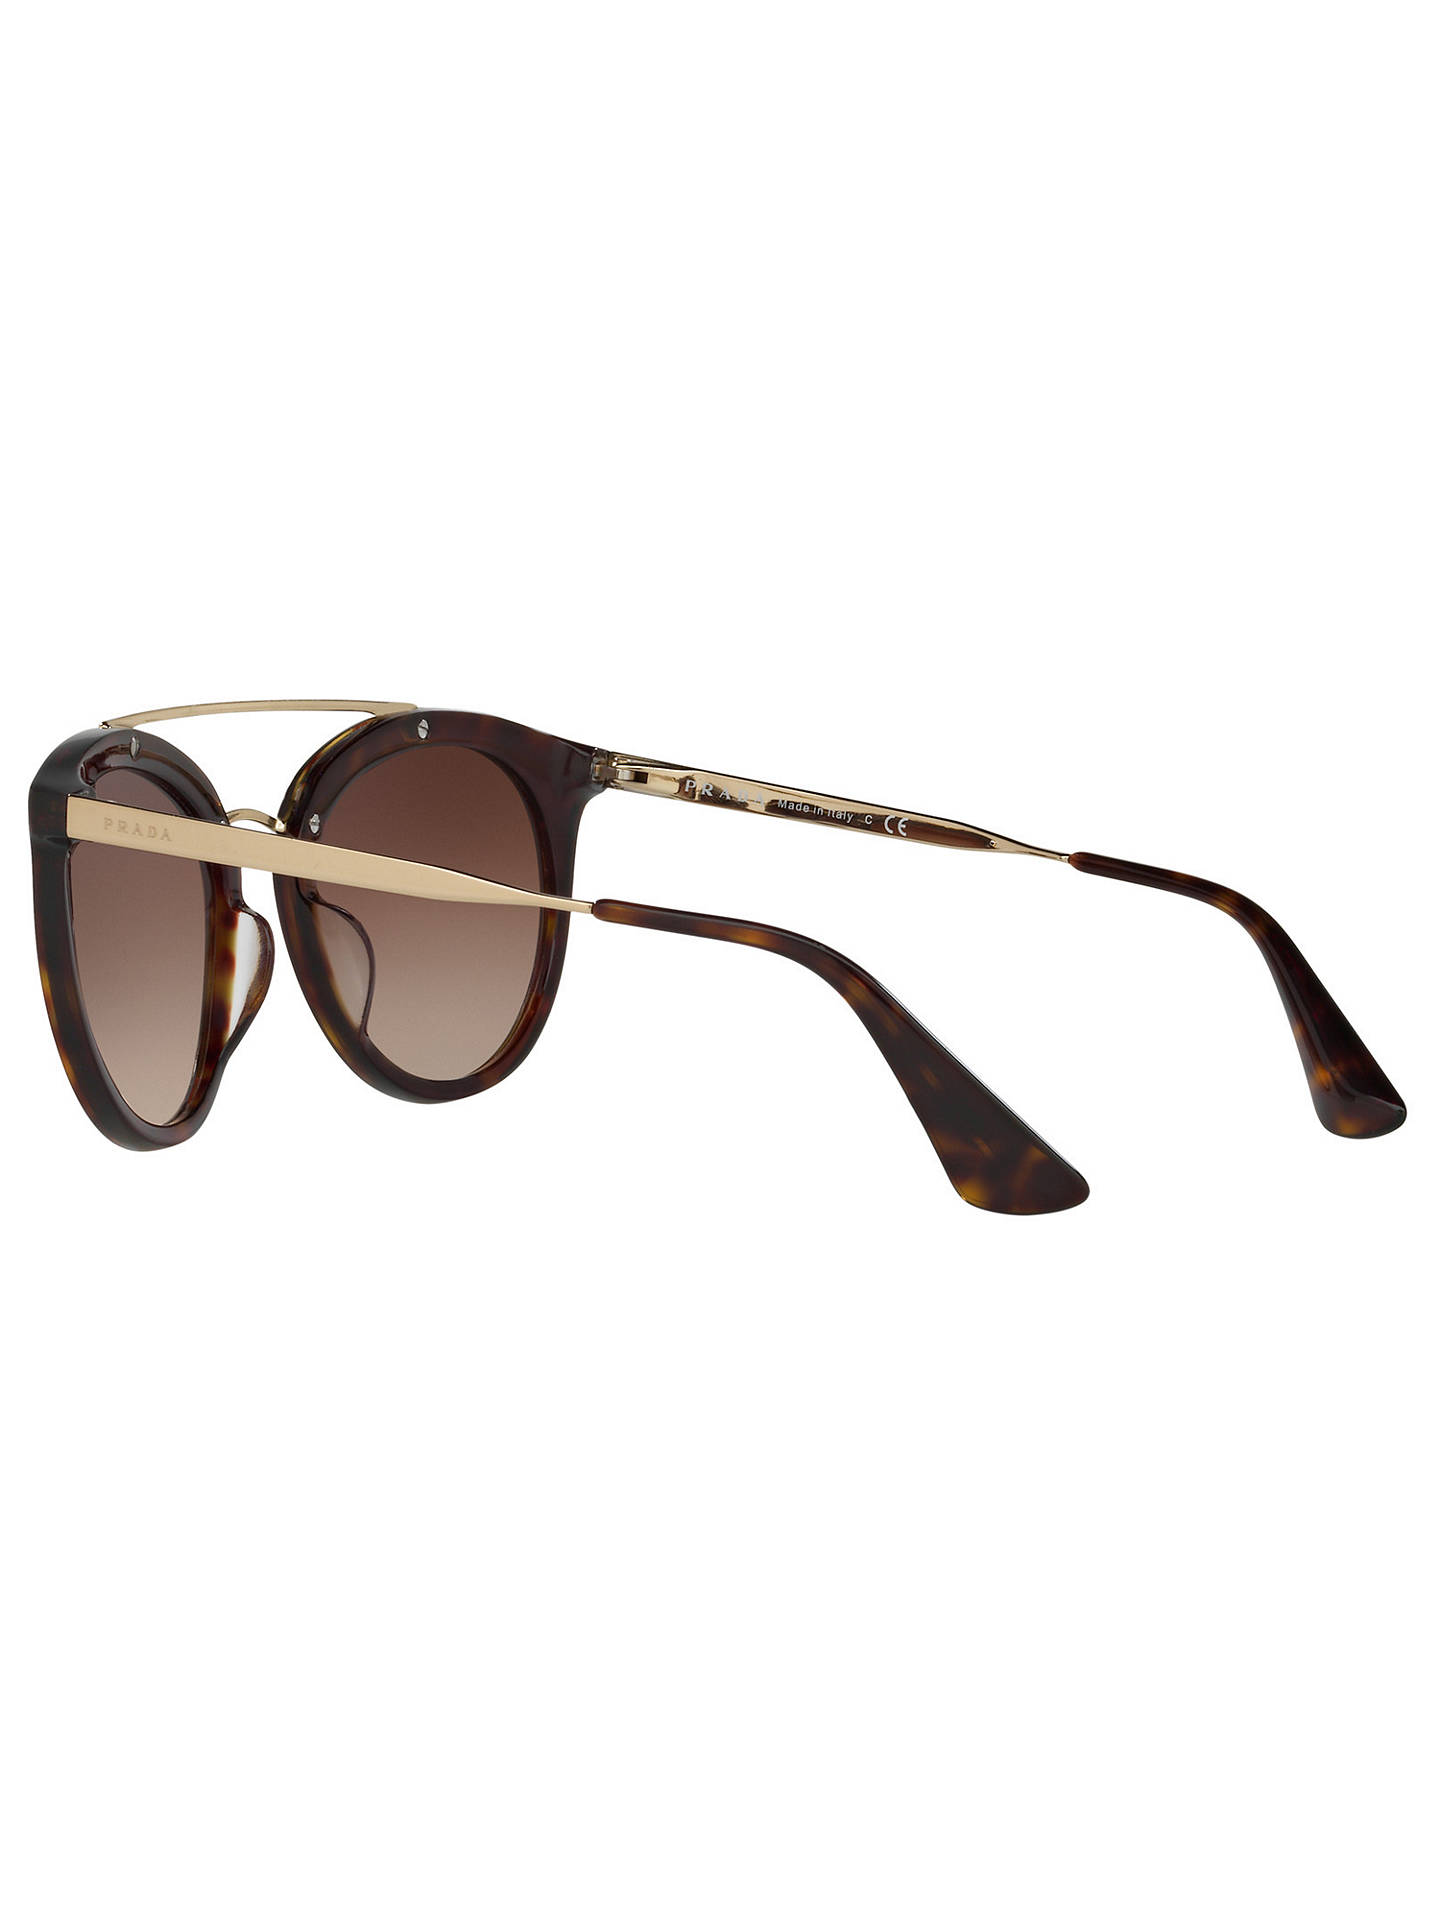 e077a50ee0 ... cheapest buyprada pr 23ss cinema oval sunglasses tortoise brown  gradient online at johnlewis 86c12 59a23